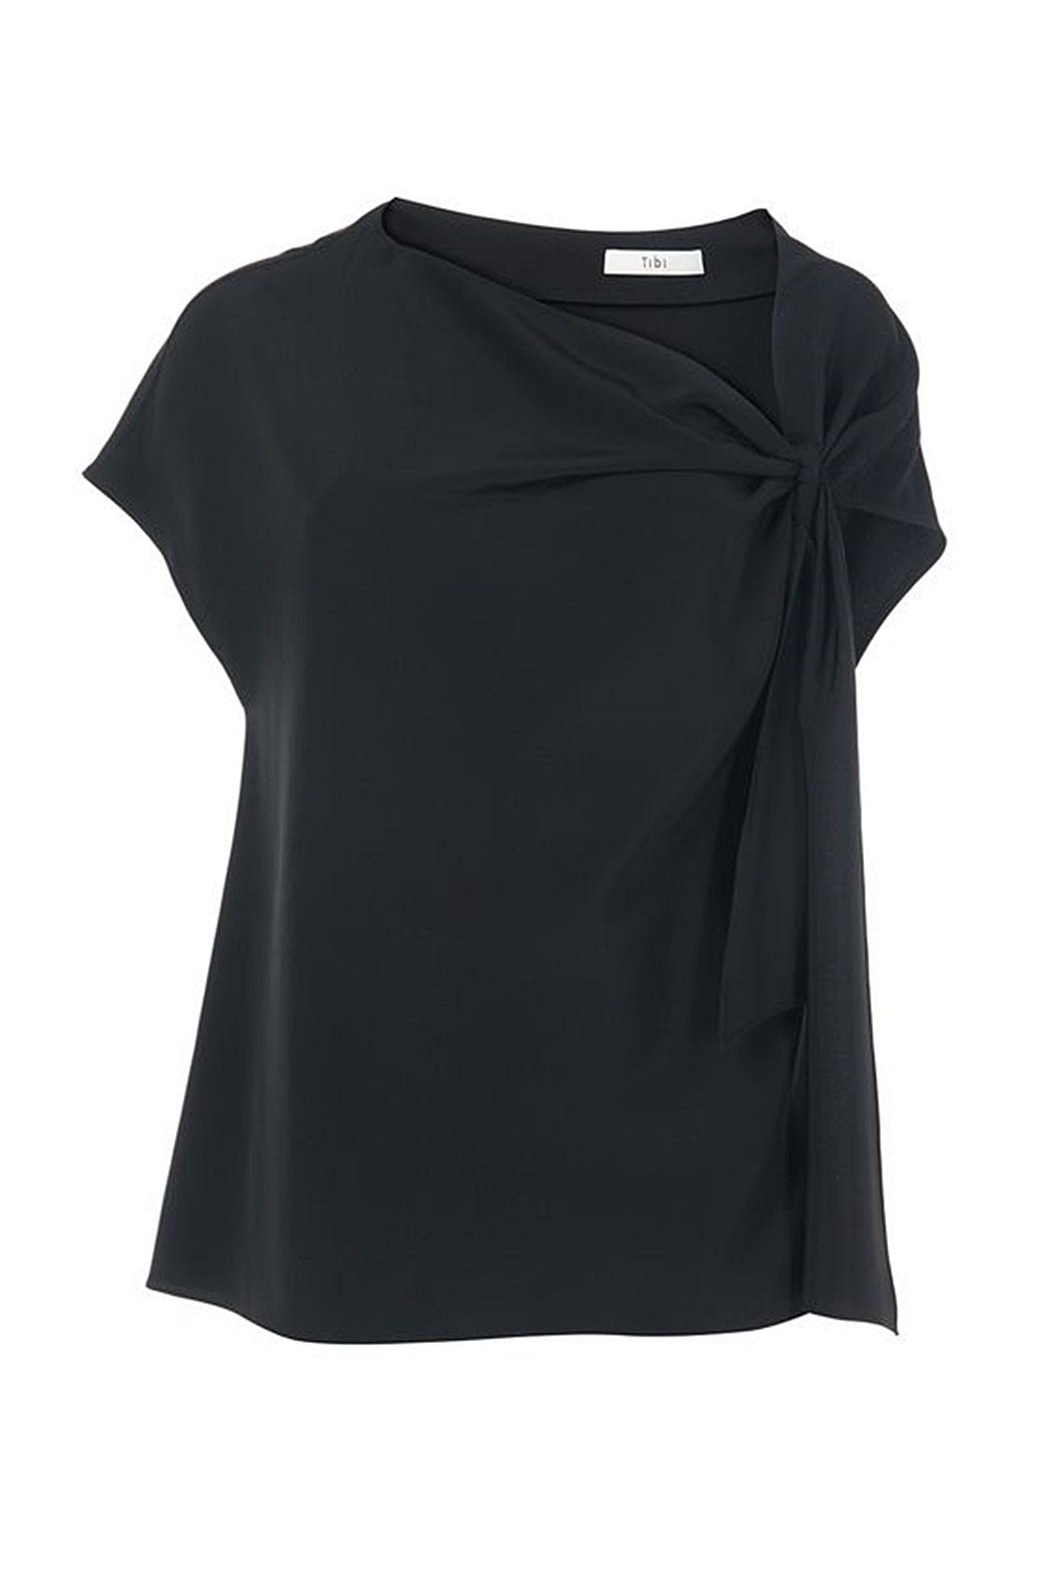 Tibi Silk Asymmetrical Top - Main Image